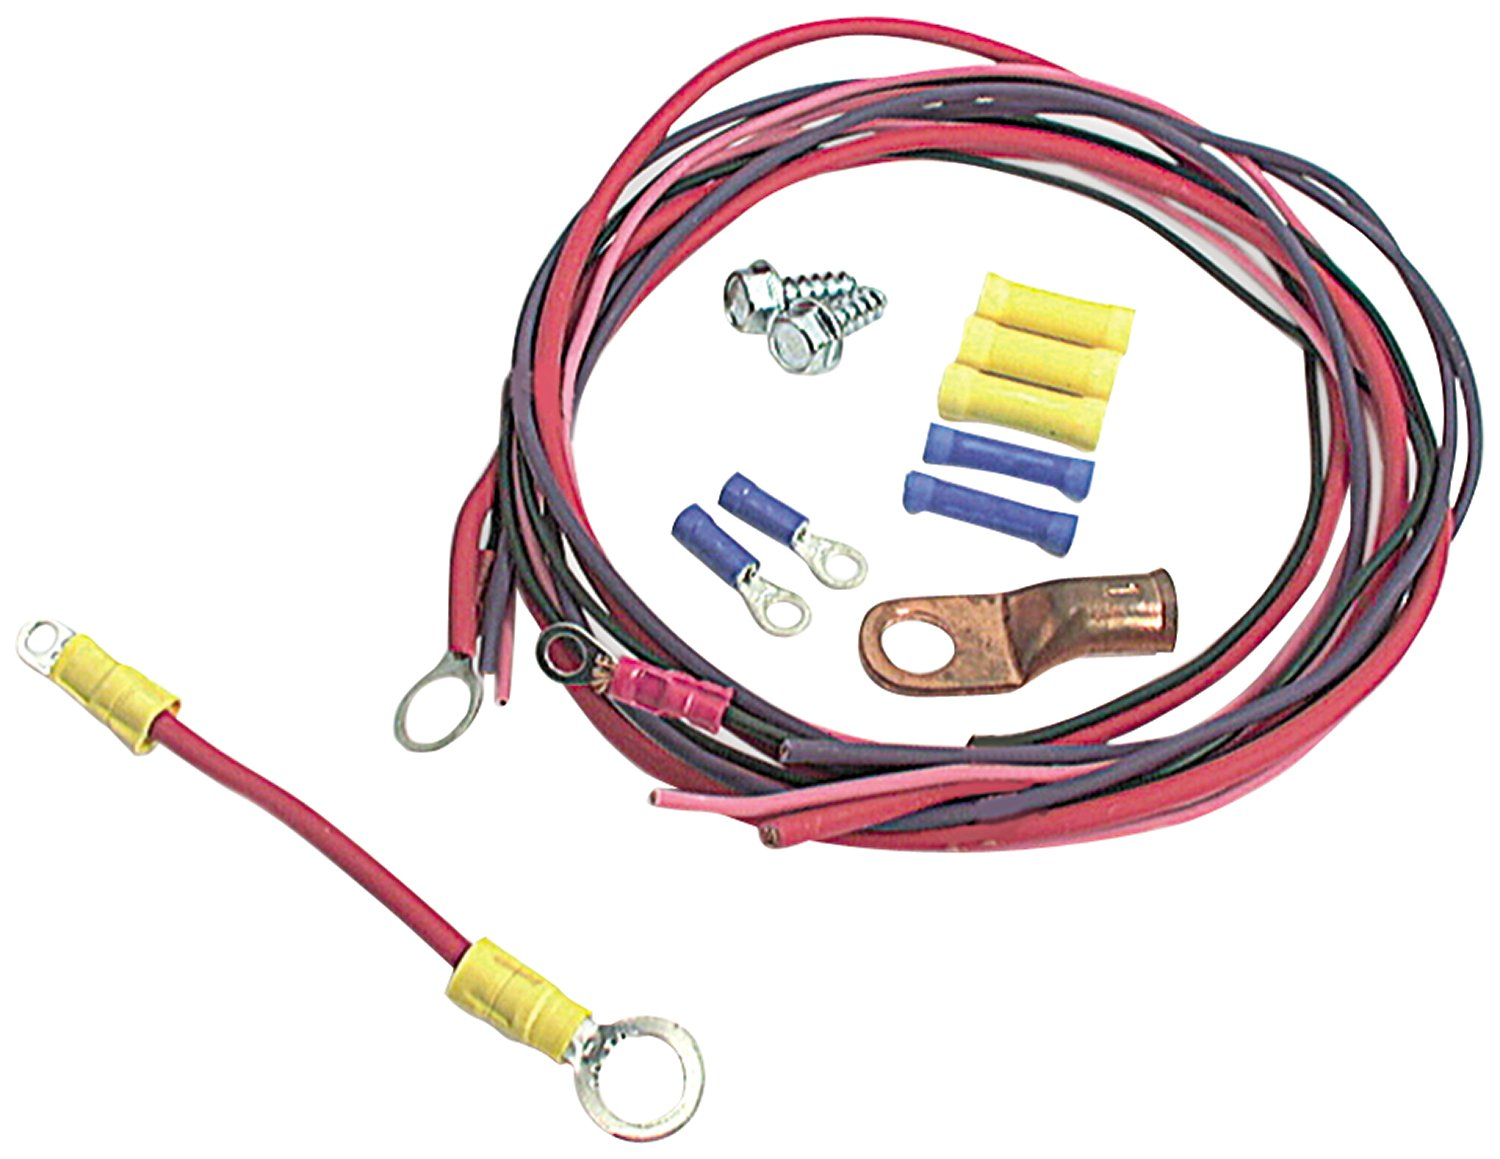 hight resolution of  wire harness car electronics fwh598 get quotations allstar all76201 solenoid wiring kit for ford style solenoid